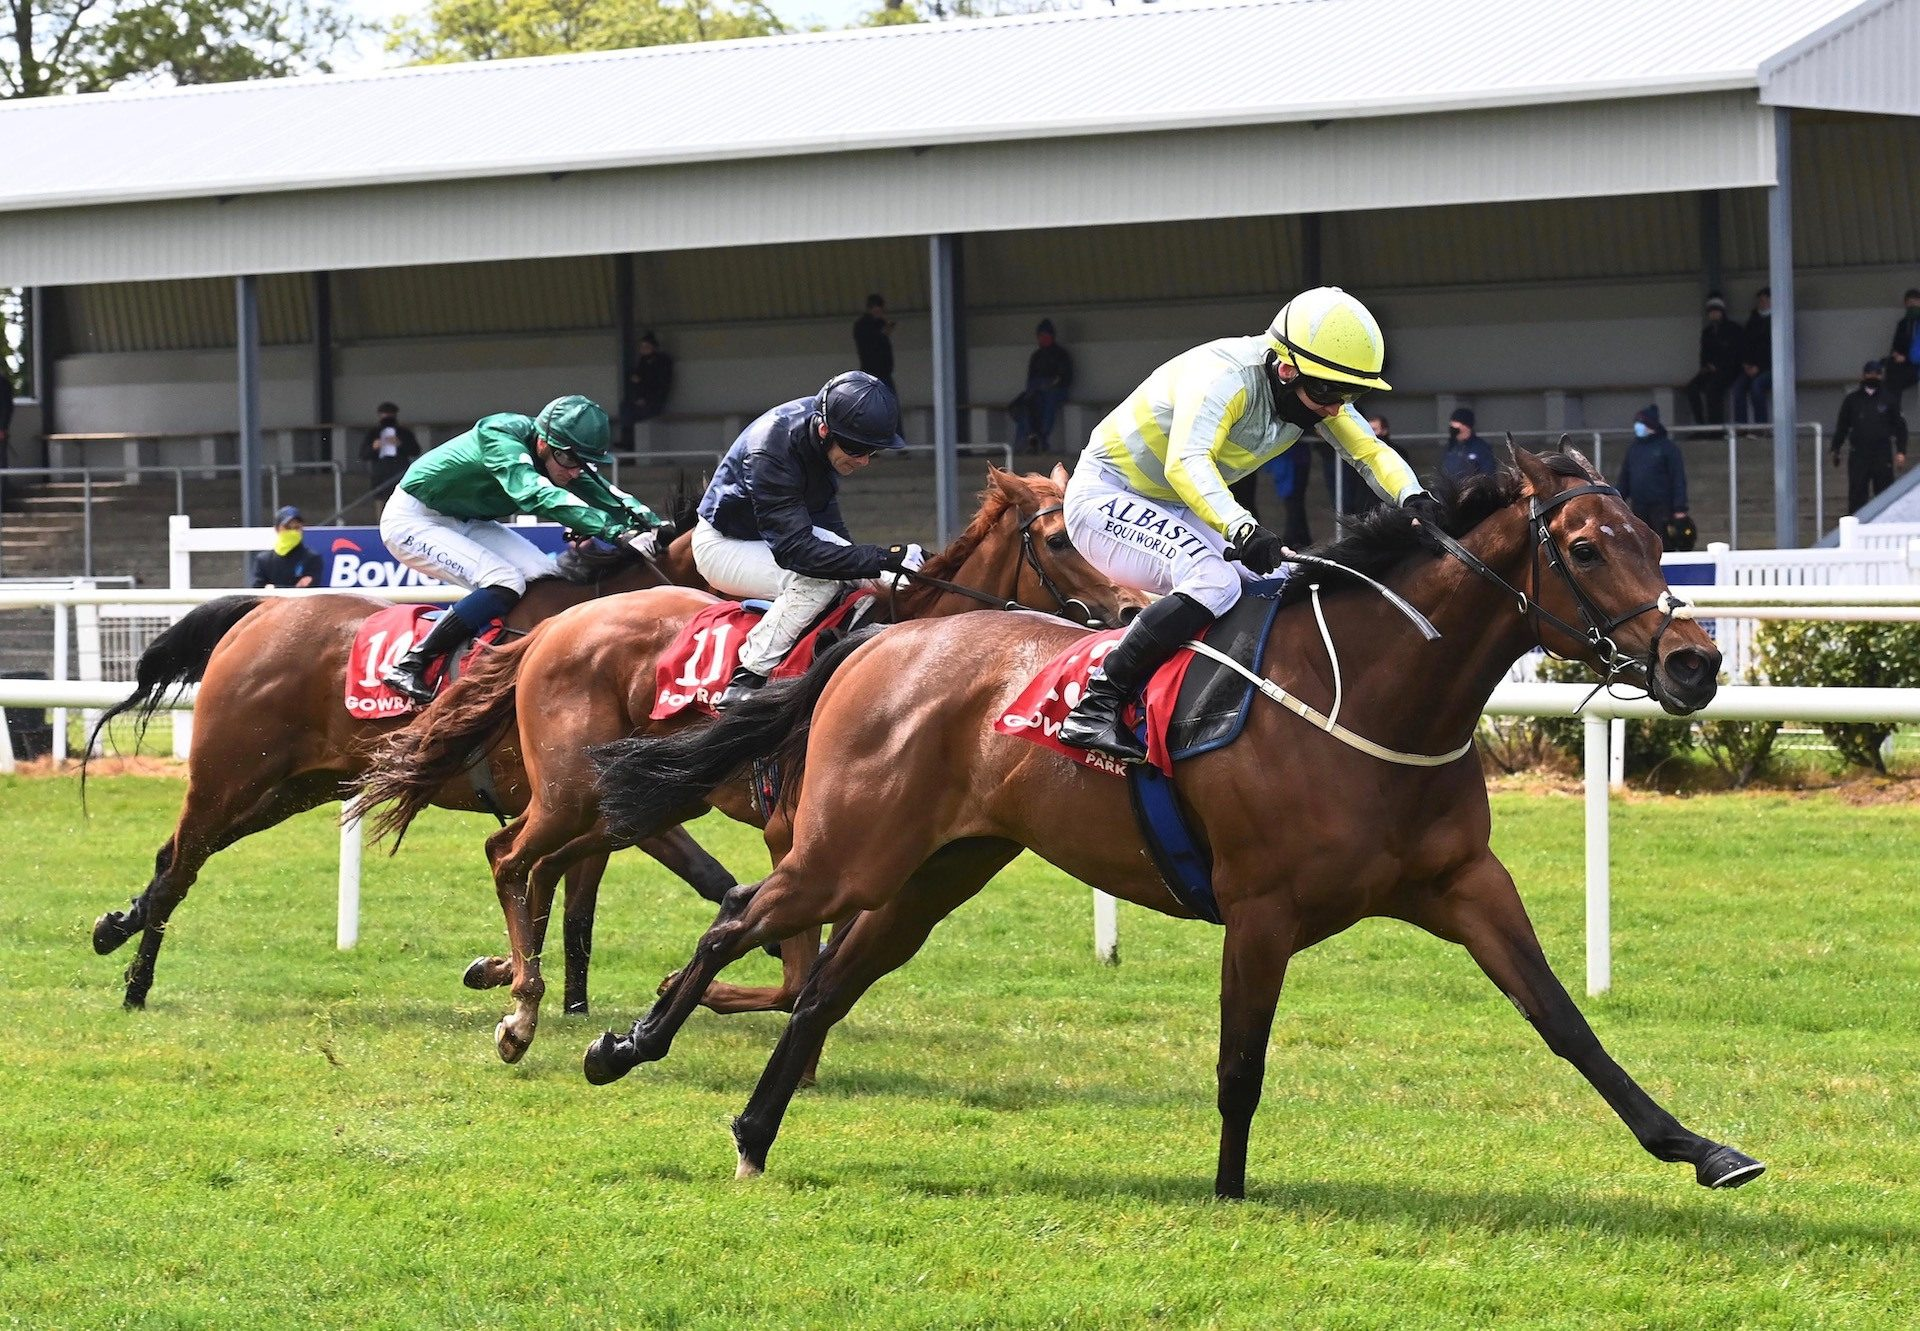 Camphor (Camelot) Wins The Ulster Oaks at Down Royal